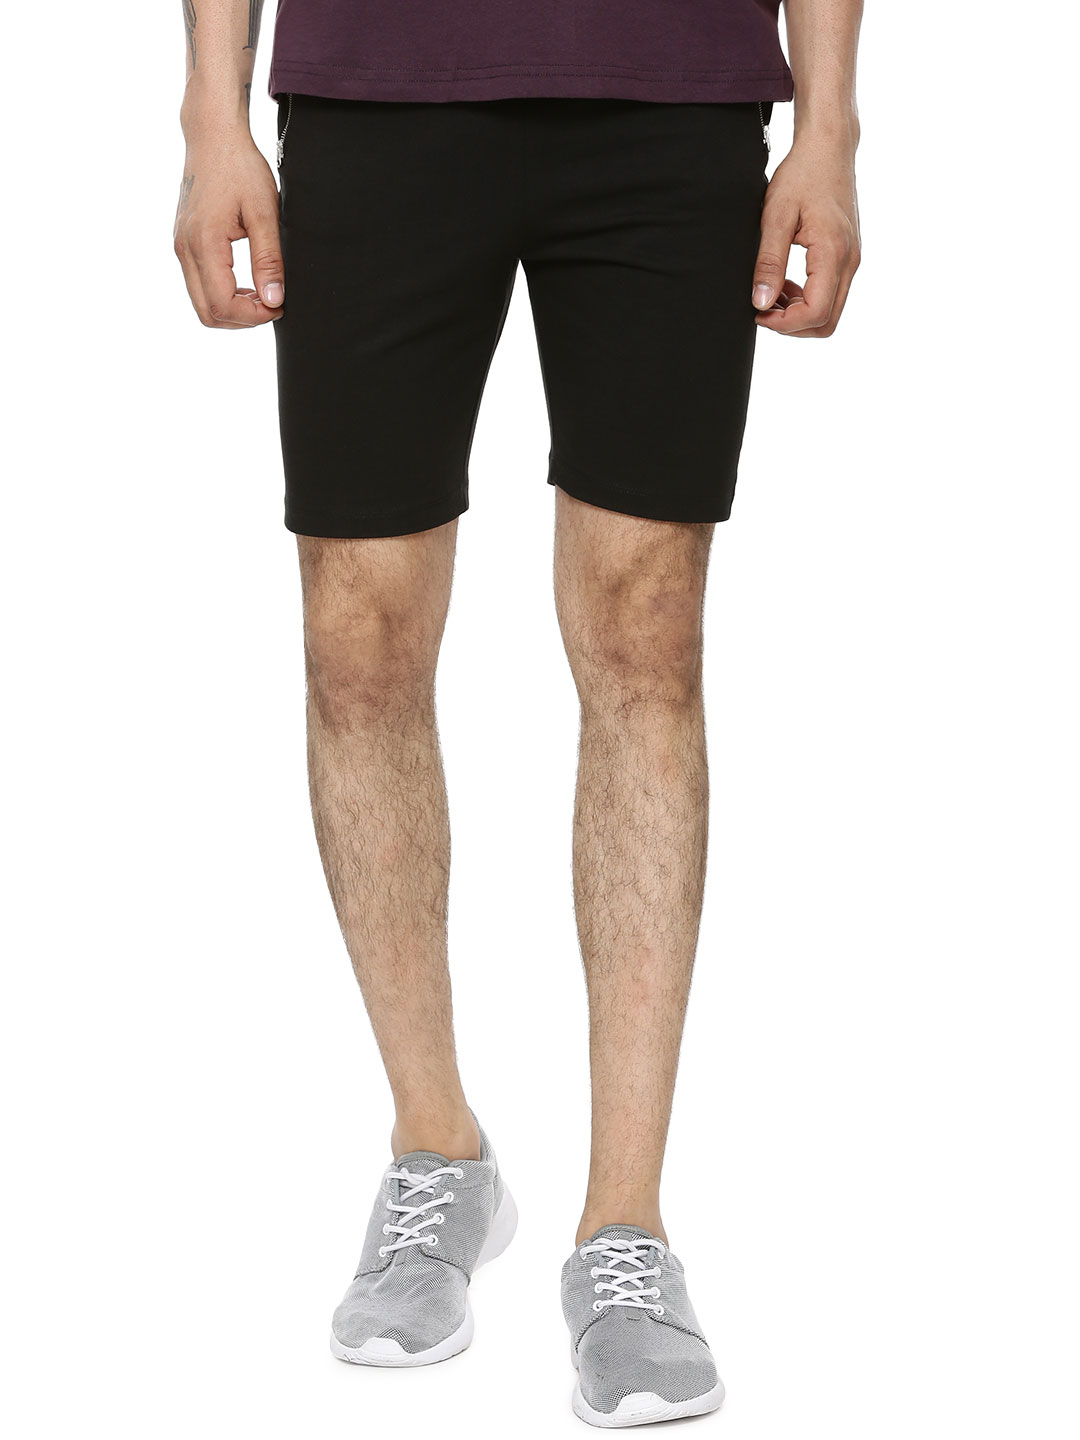 Styx & Stones Black Knitted Shorts With Zip Pockets 1